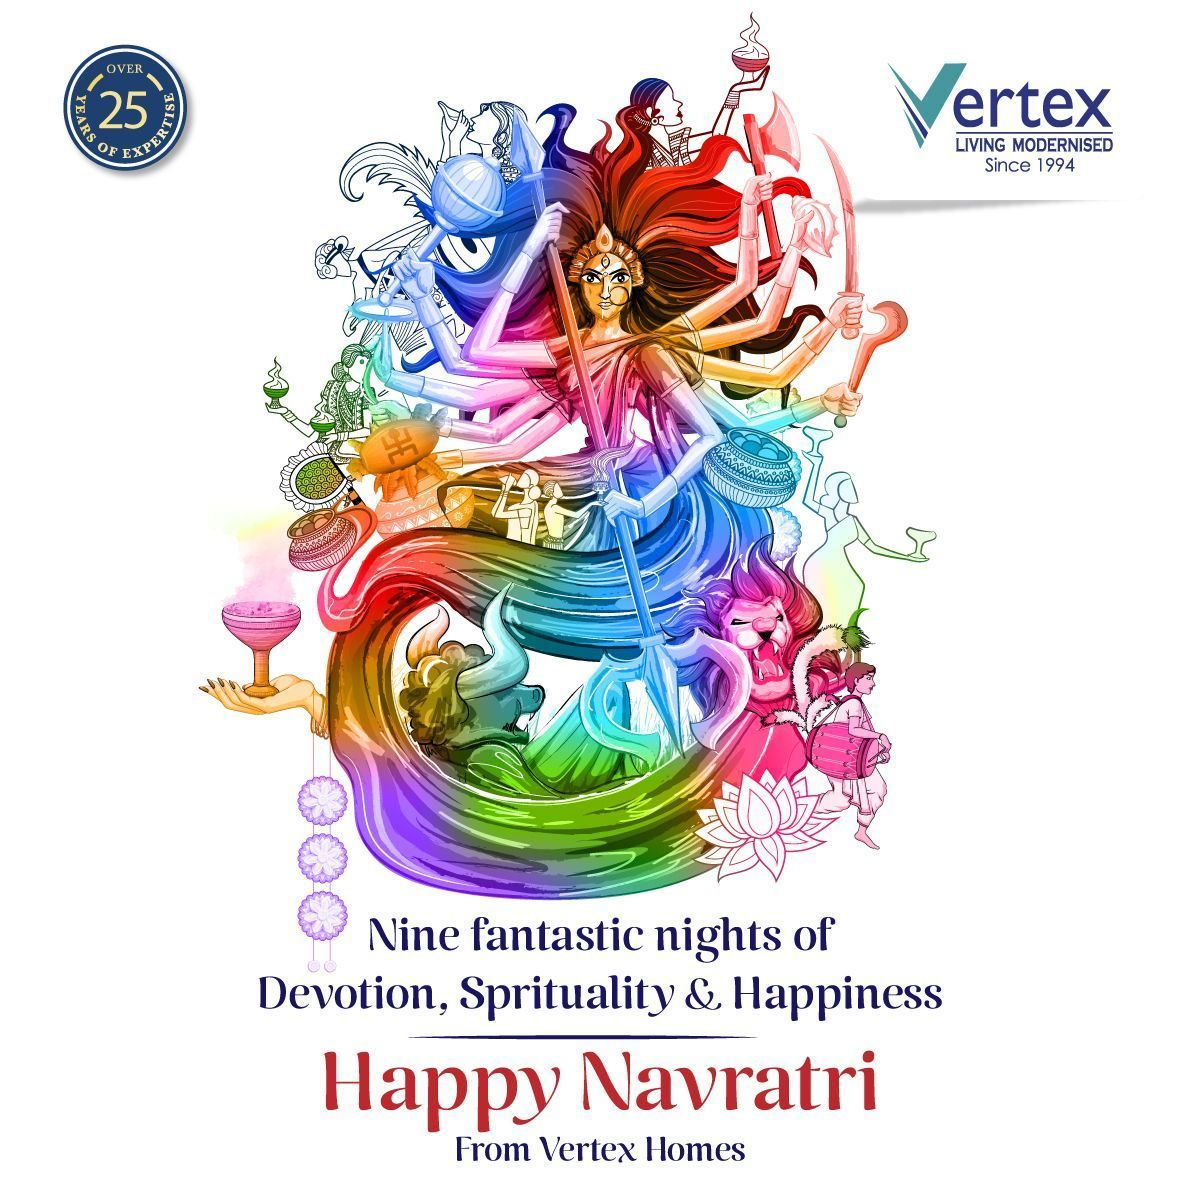 Nine fantastic nights of Devotion, Spirituality & Happiness Happy Navratri  #navratriwishes A very Happy Navratri wishes to you and your family from Vertex Homes. Stay blessed! . . . . . . . #happynavratri #happynavratri2019 #navratri #navratridays #navratrifast #navratrispecial #navratrifever #navratrilovers #navratri2019 #navratricelebrations #navratri2019celebration #openplots #realestate #flats #2and3BHKApartments #gatedcommunity #navratriwishes Nine fantastic nights of Devotion, Spiritualit #navratriwishes